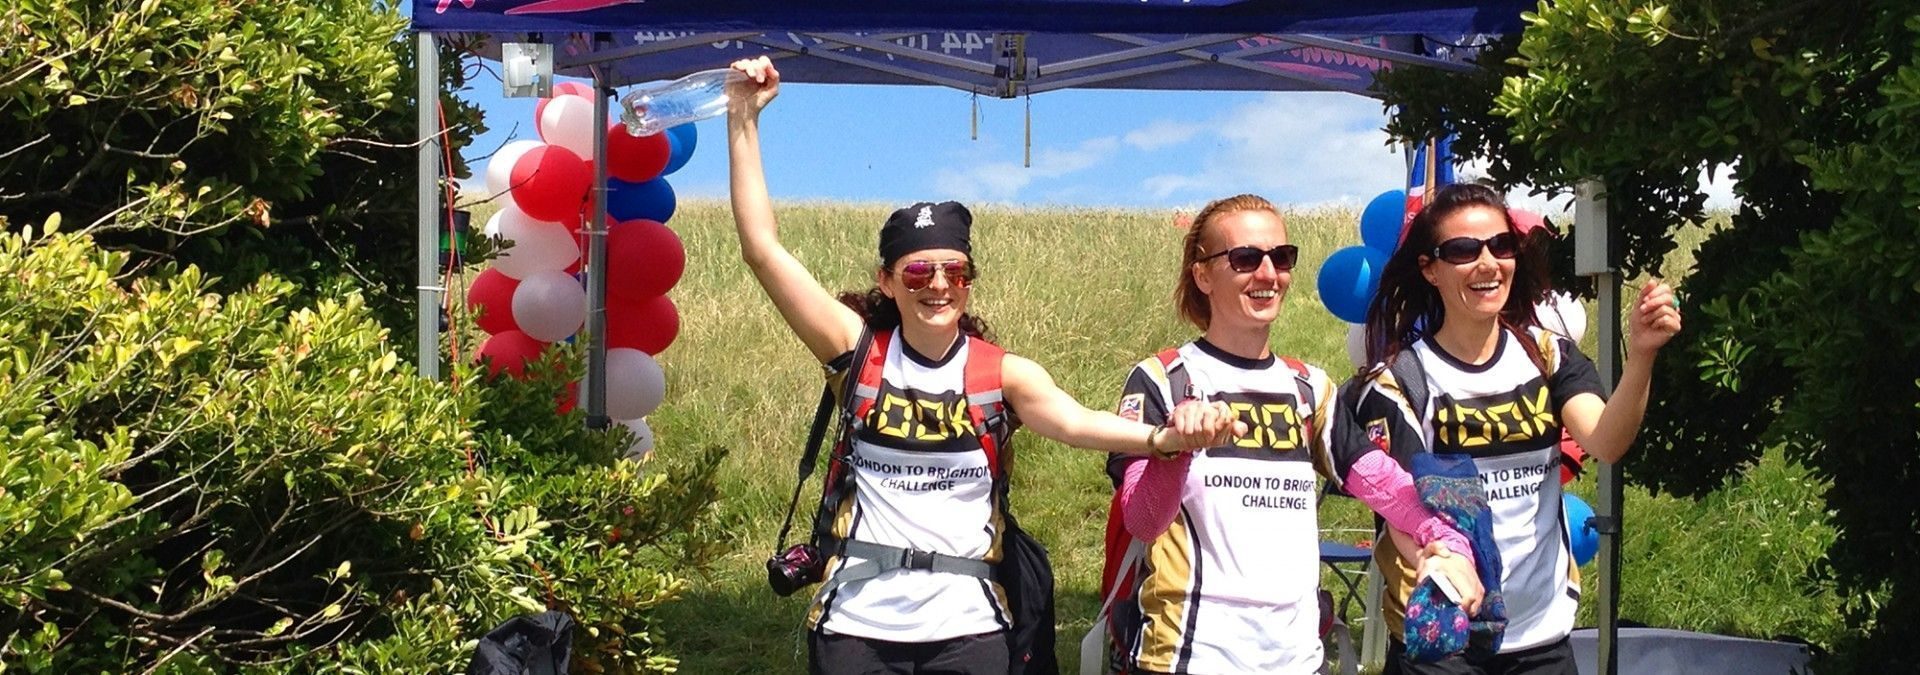 Challengers_crossing_finish_line_Blind_Veterans_100k.jpg